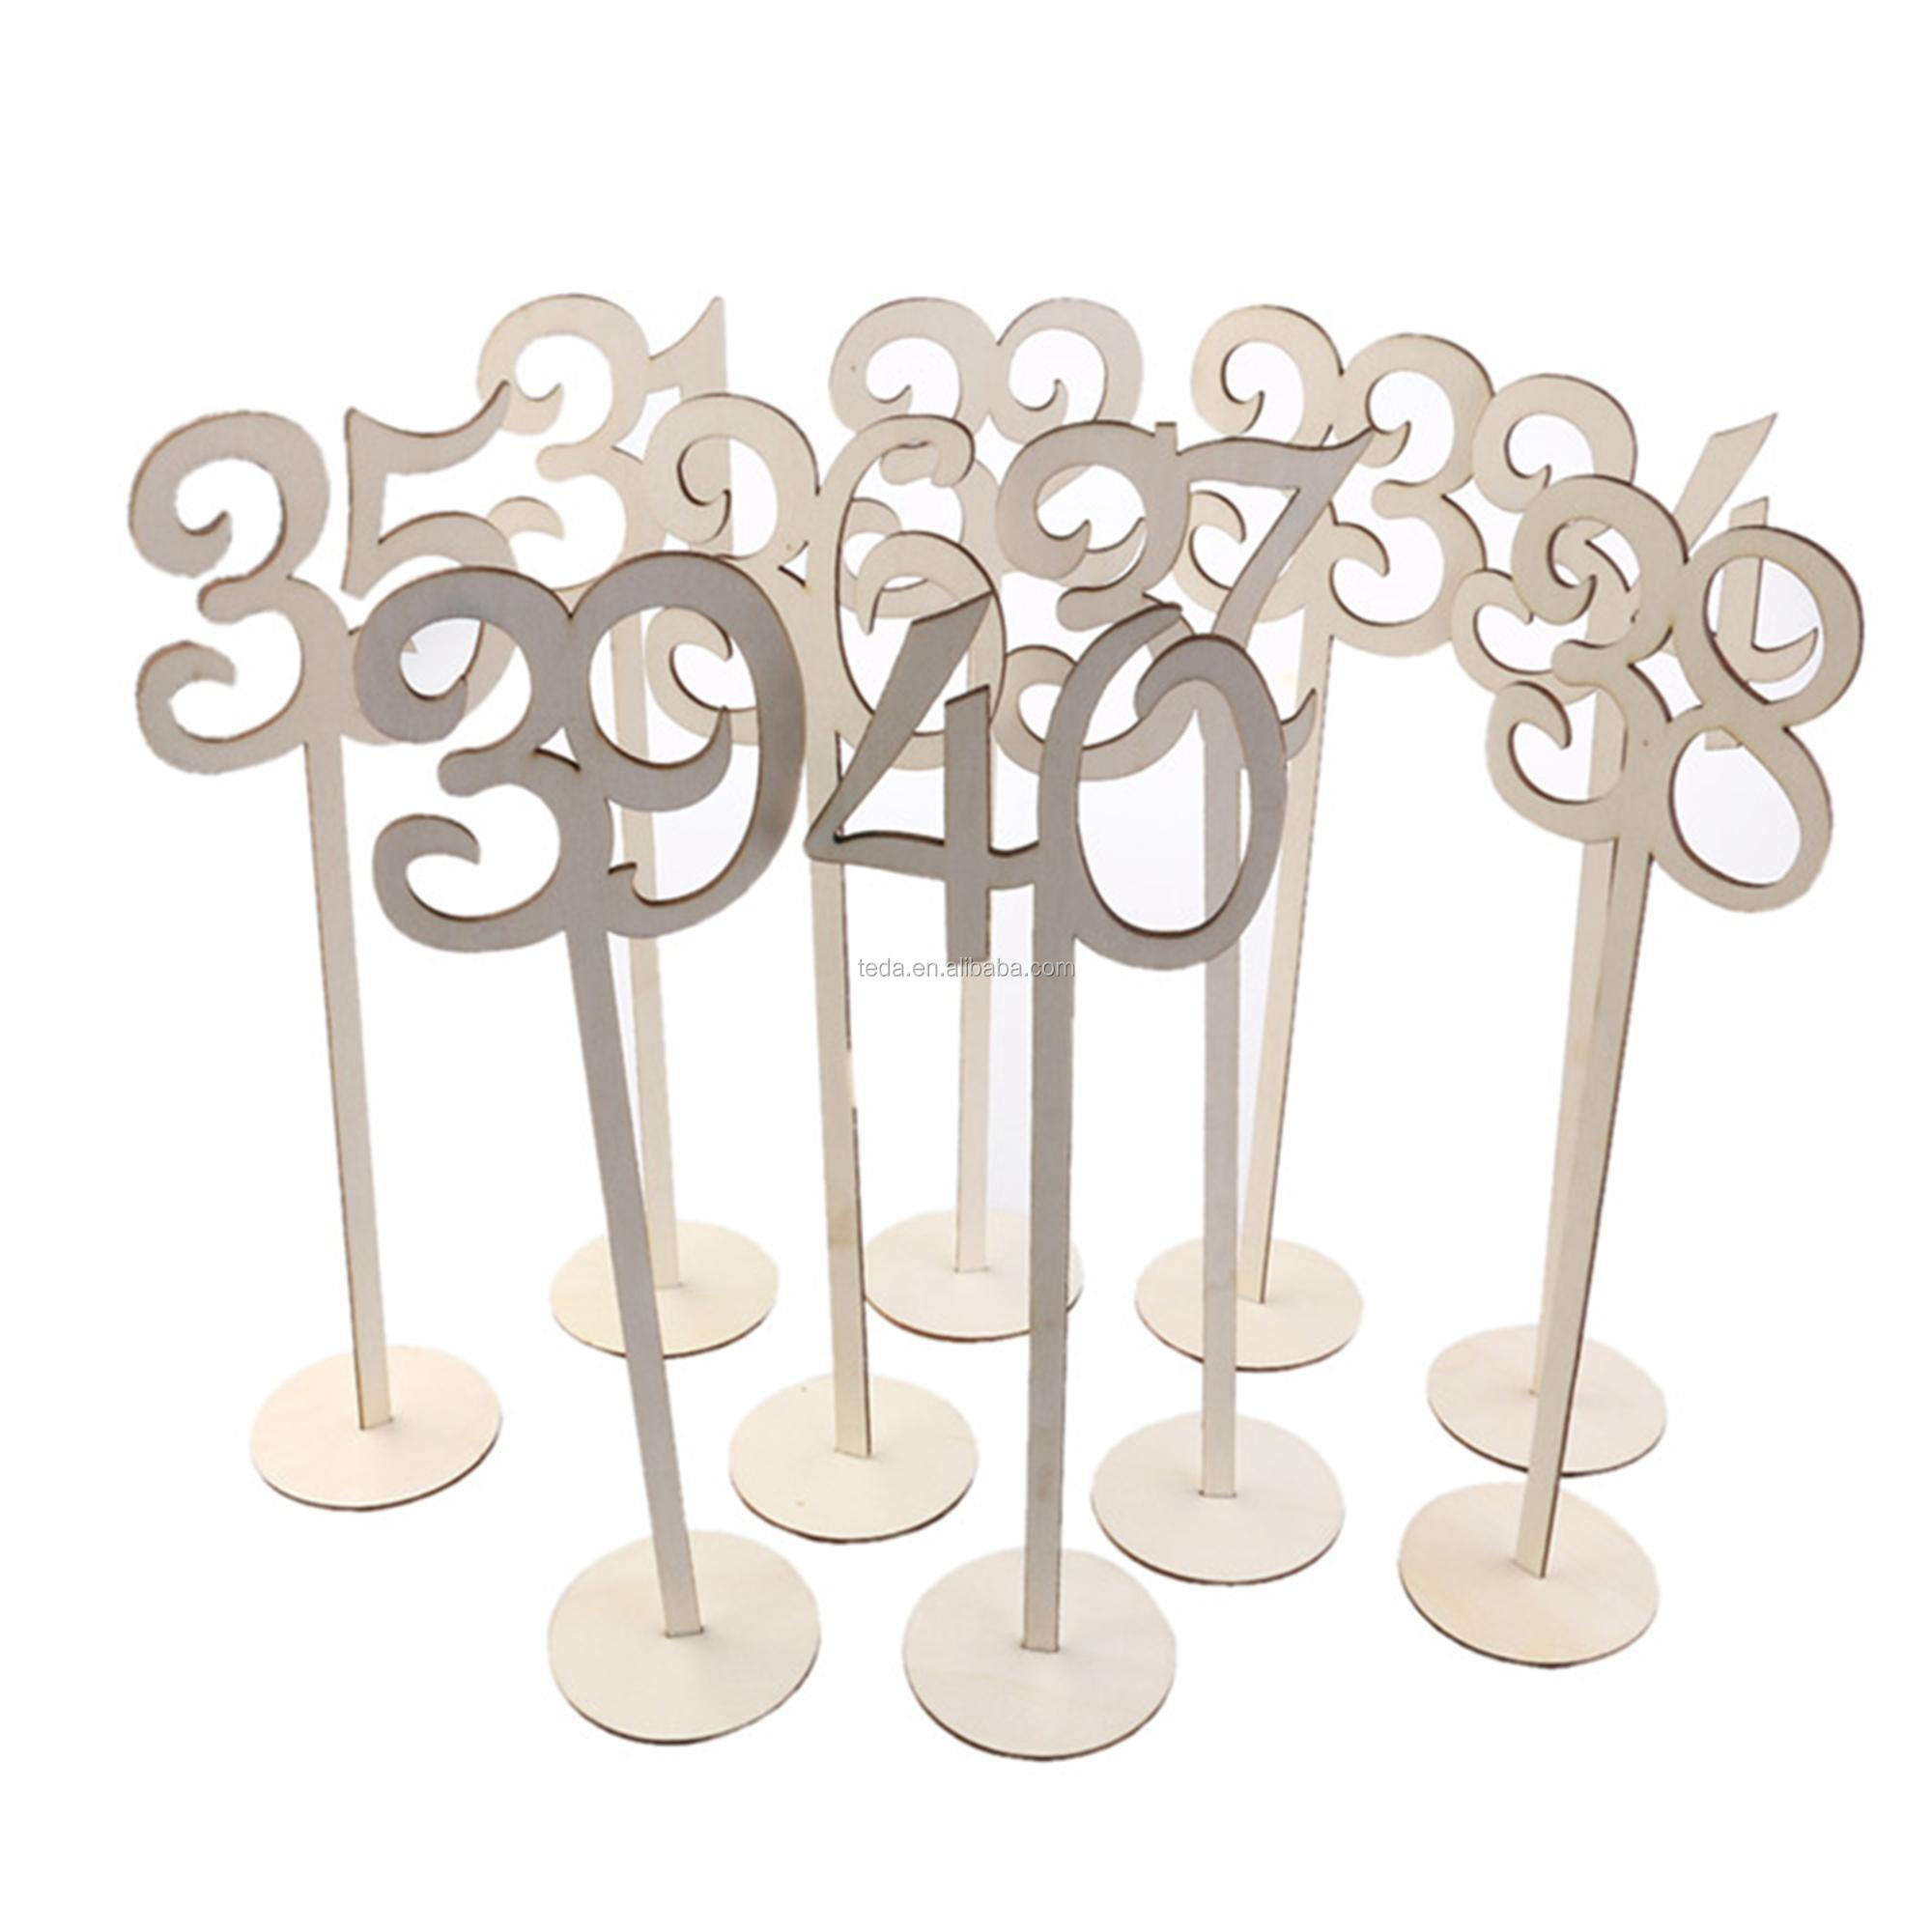 1-40 Wood Table Numbers with Holder Base for Wedding Home Wedding Anniversary Party Decoration